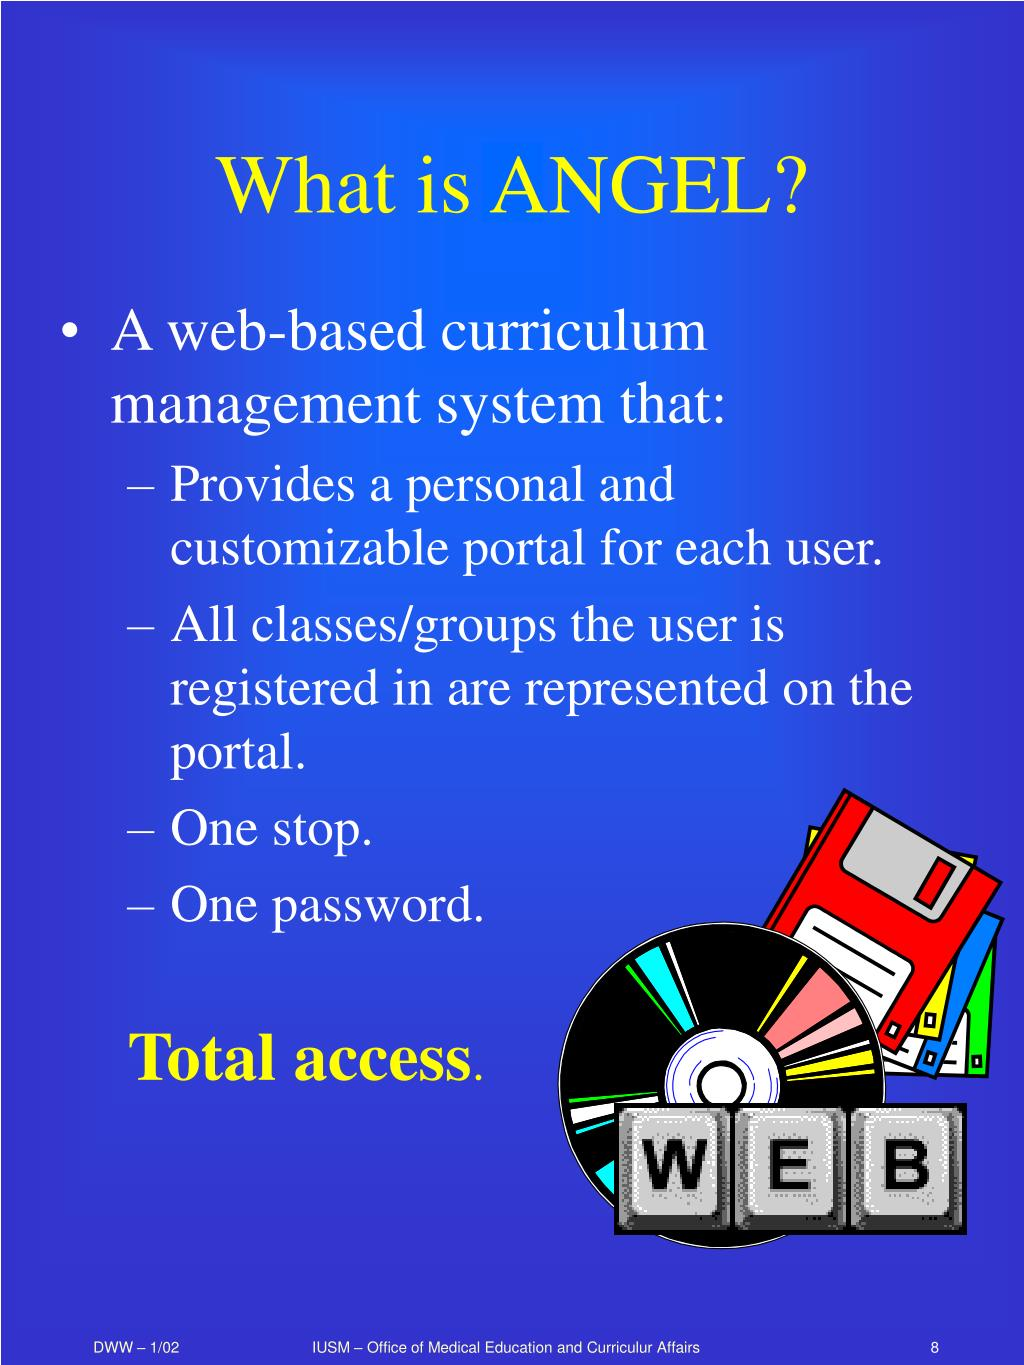 What is ANGEL?